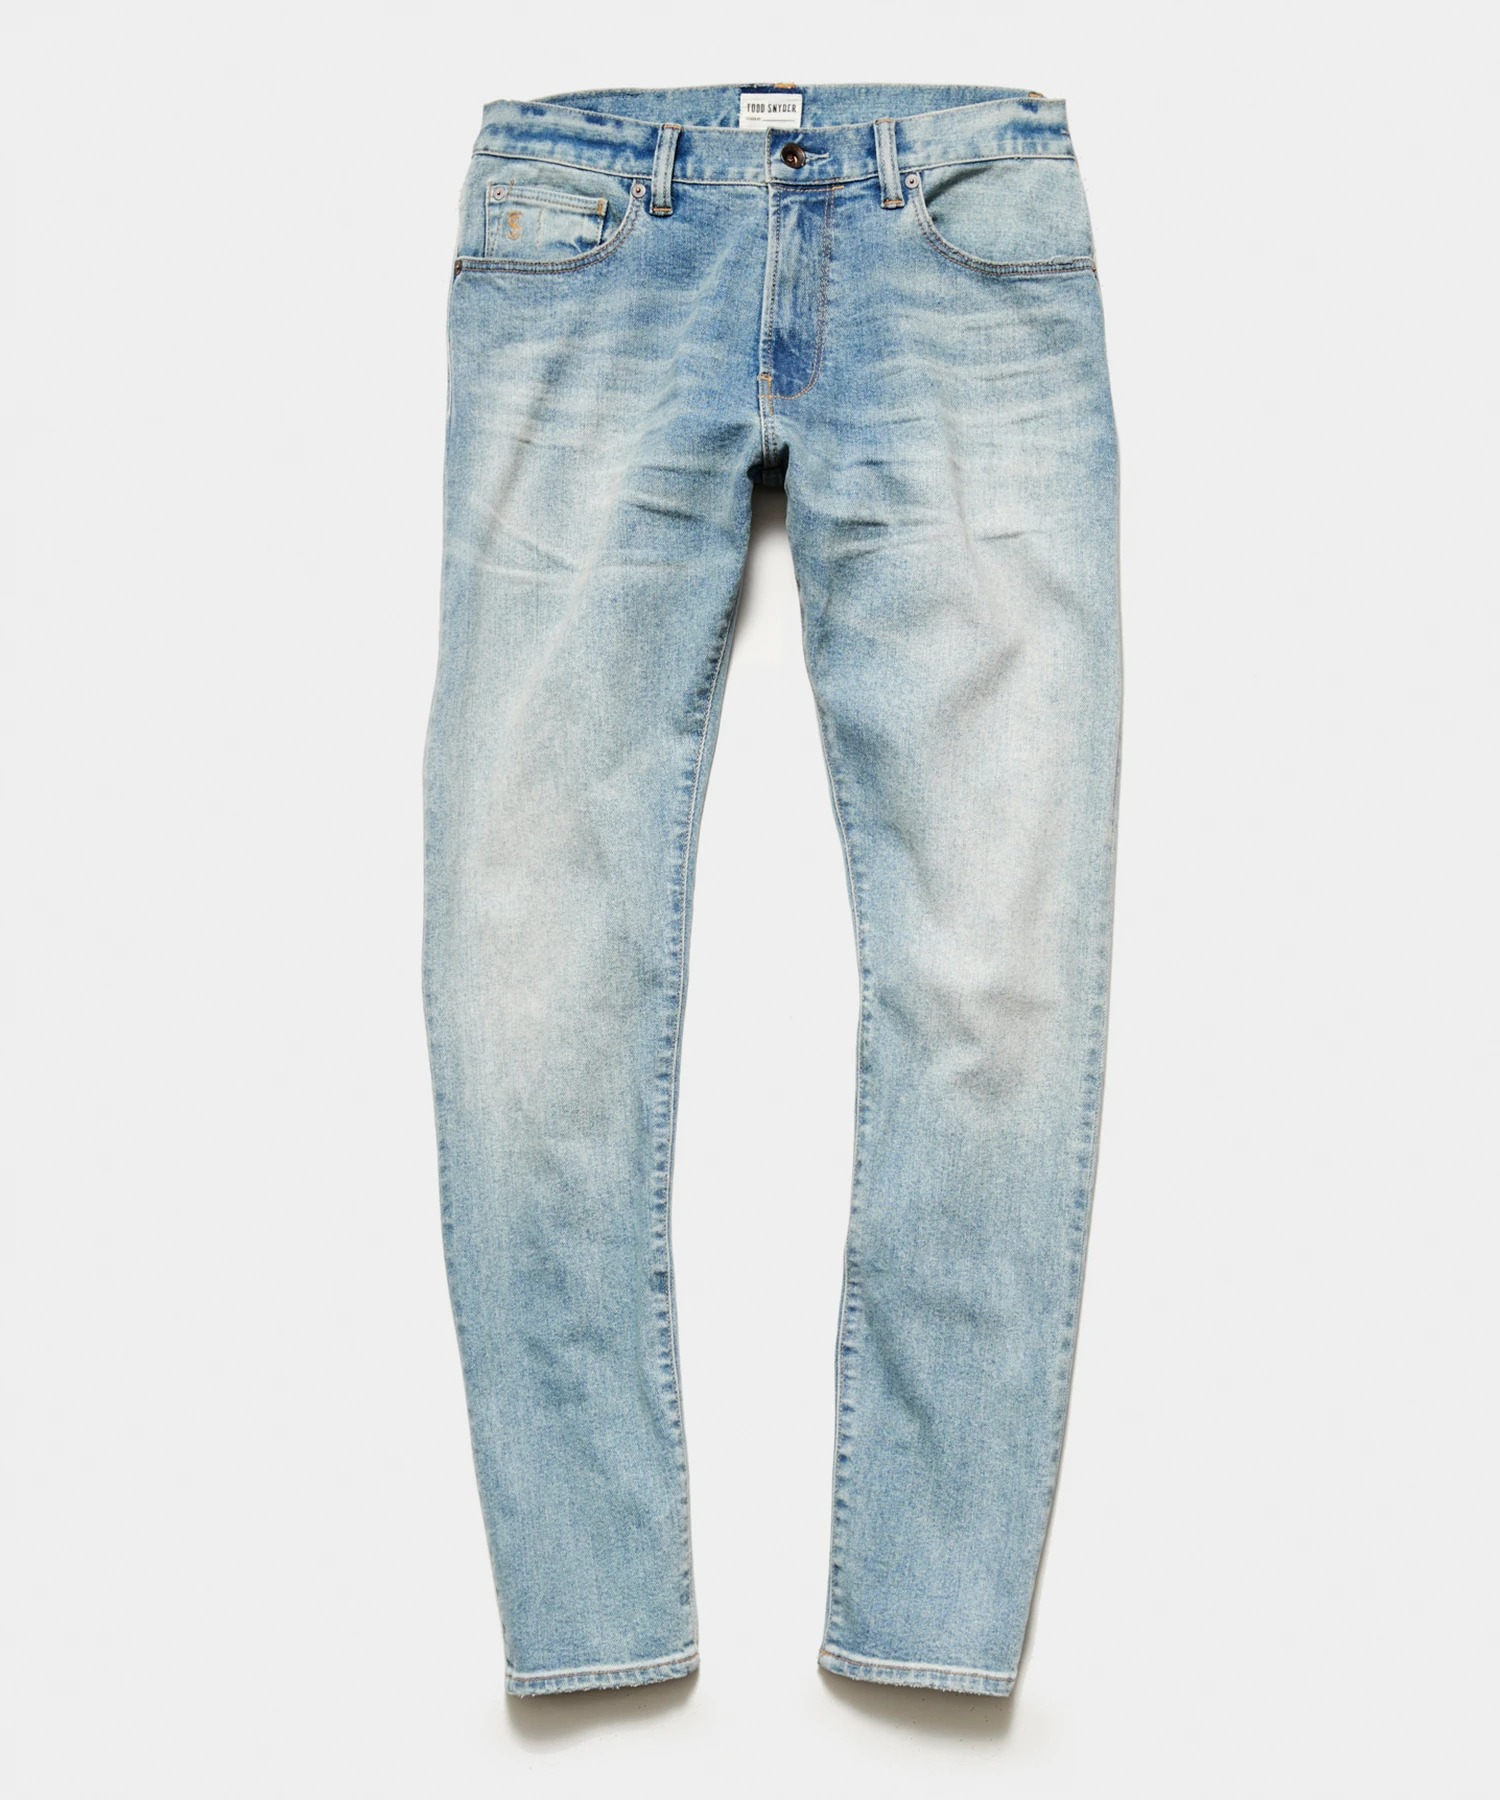 Todd Snyder Slim Fit Stretch Jeans, most comfortable jeans for men